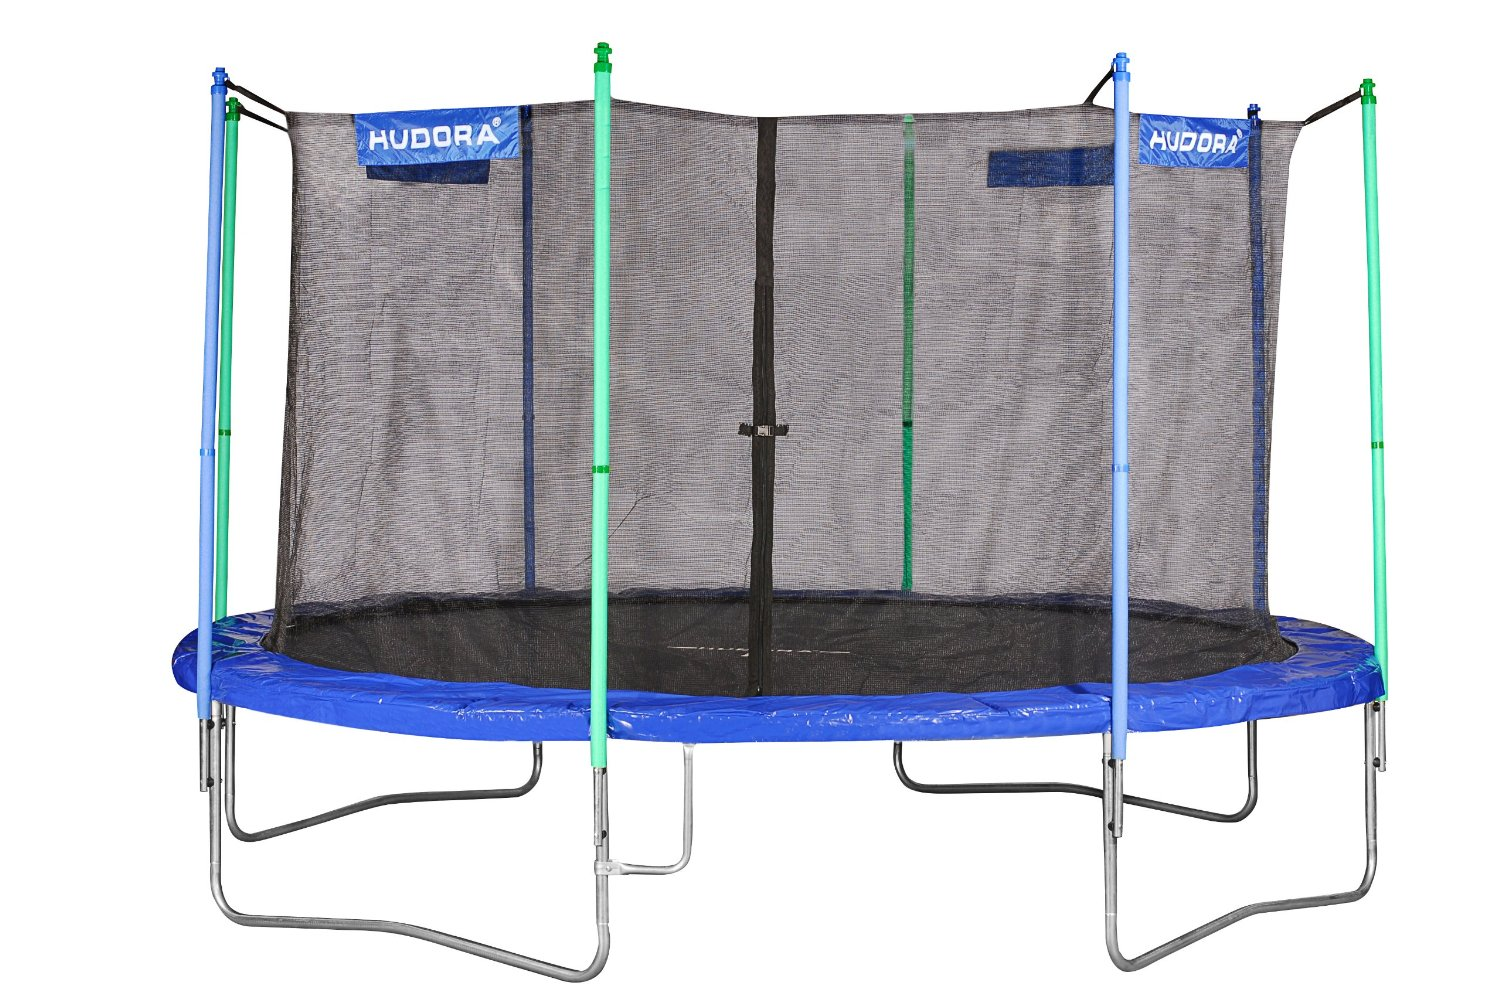 hudora 305 cm trampolin test trampolin vergleich 2017. Black Bedroom Furniture Sets. Home Design Ideas